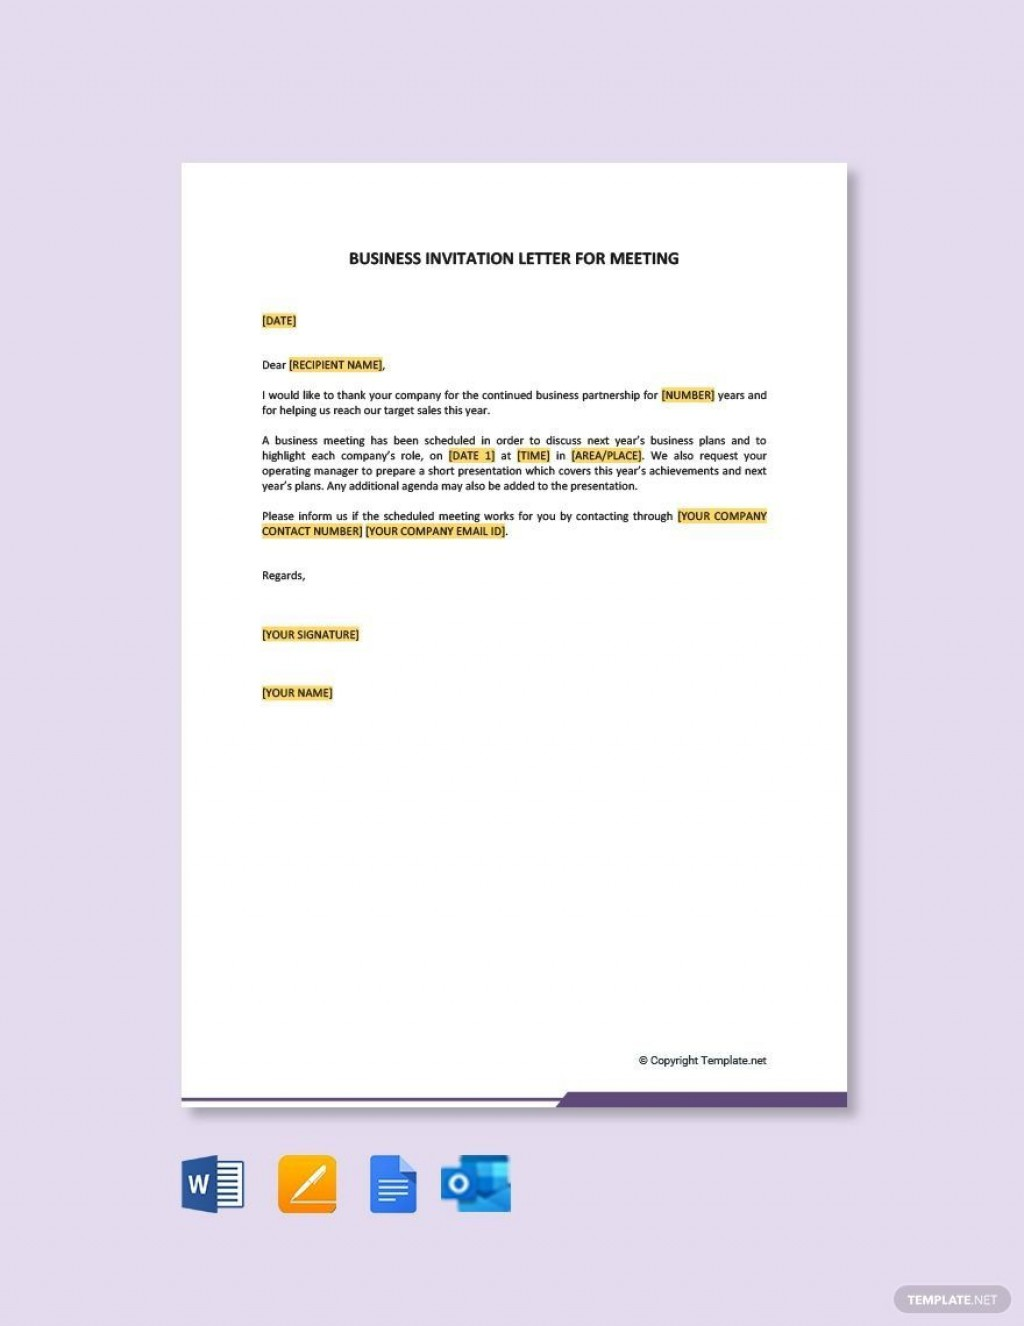 005 Exceptional Free Busines Invitation Template For Word High Def Large